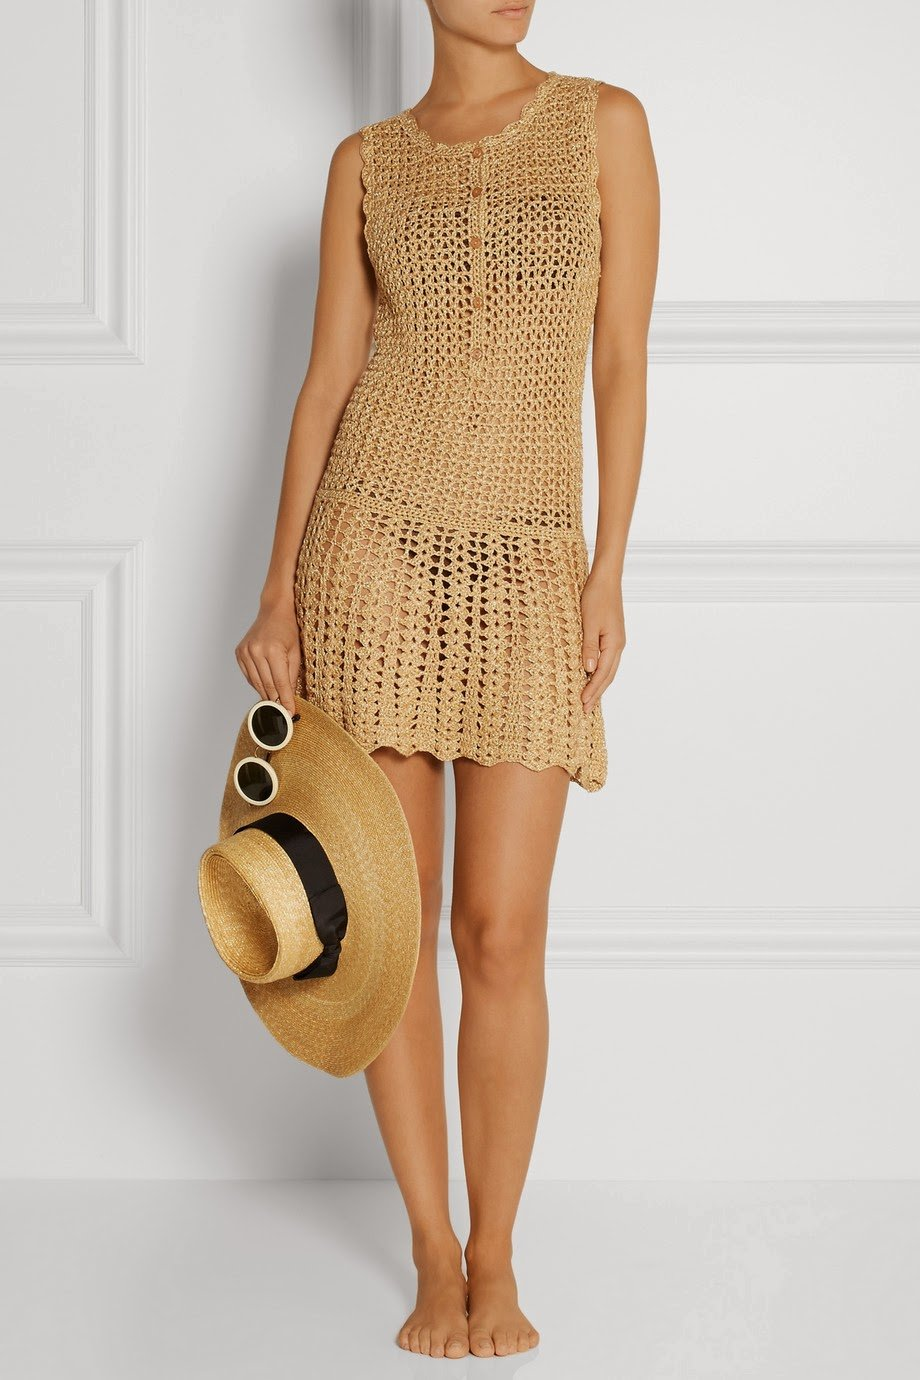 golden crochet summer dress